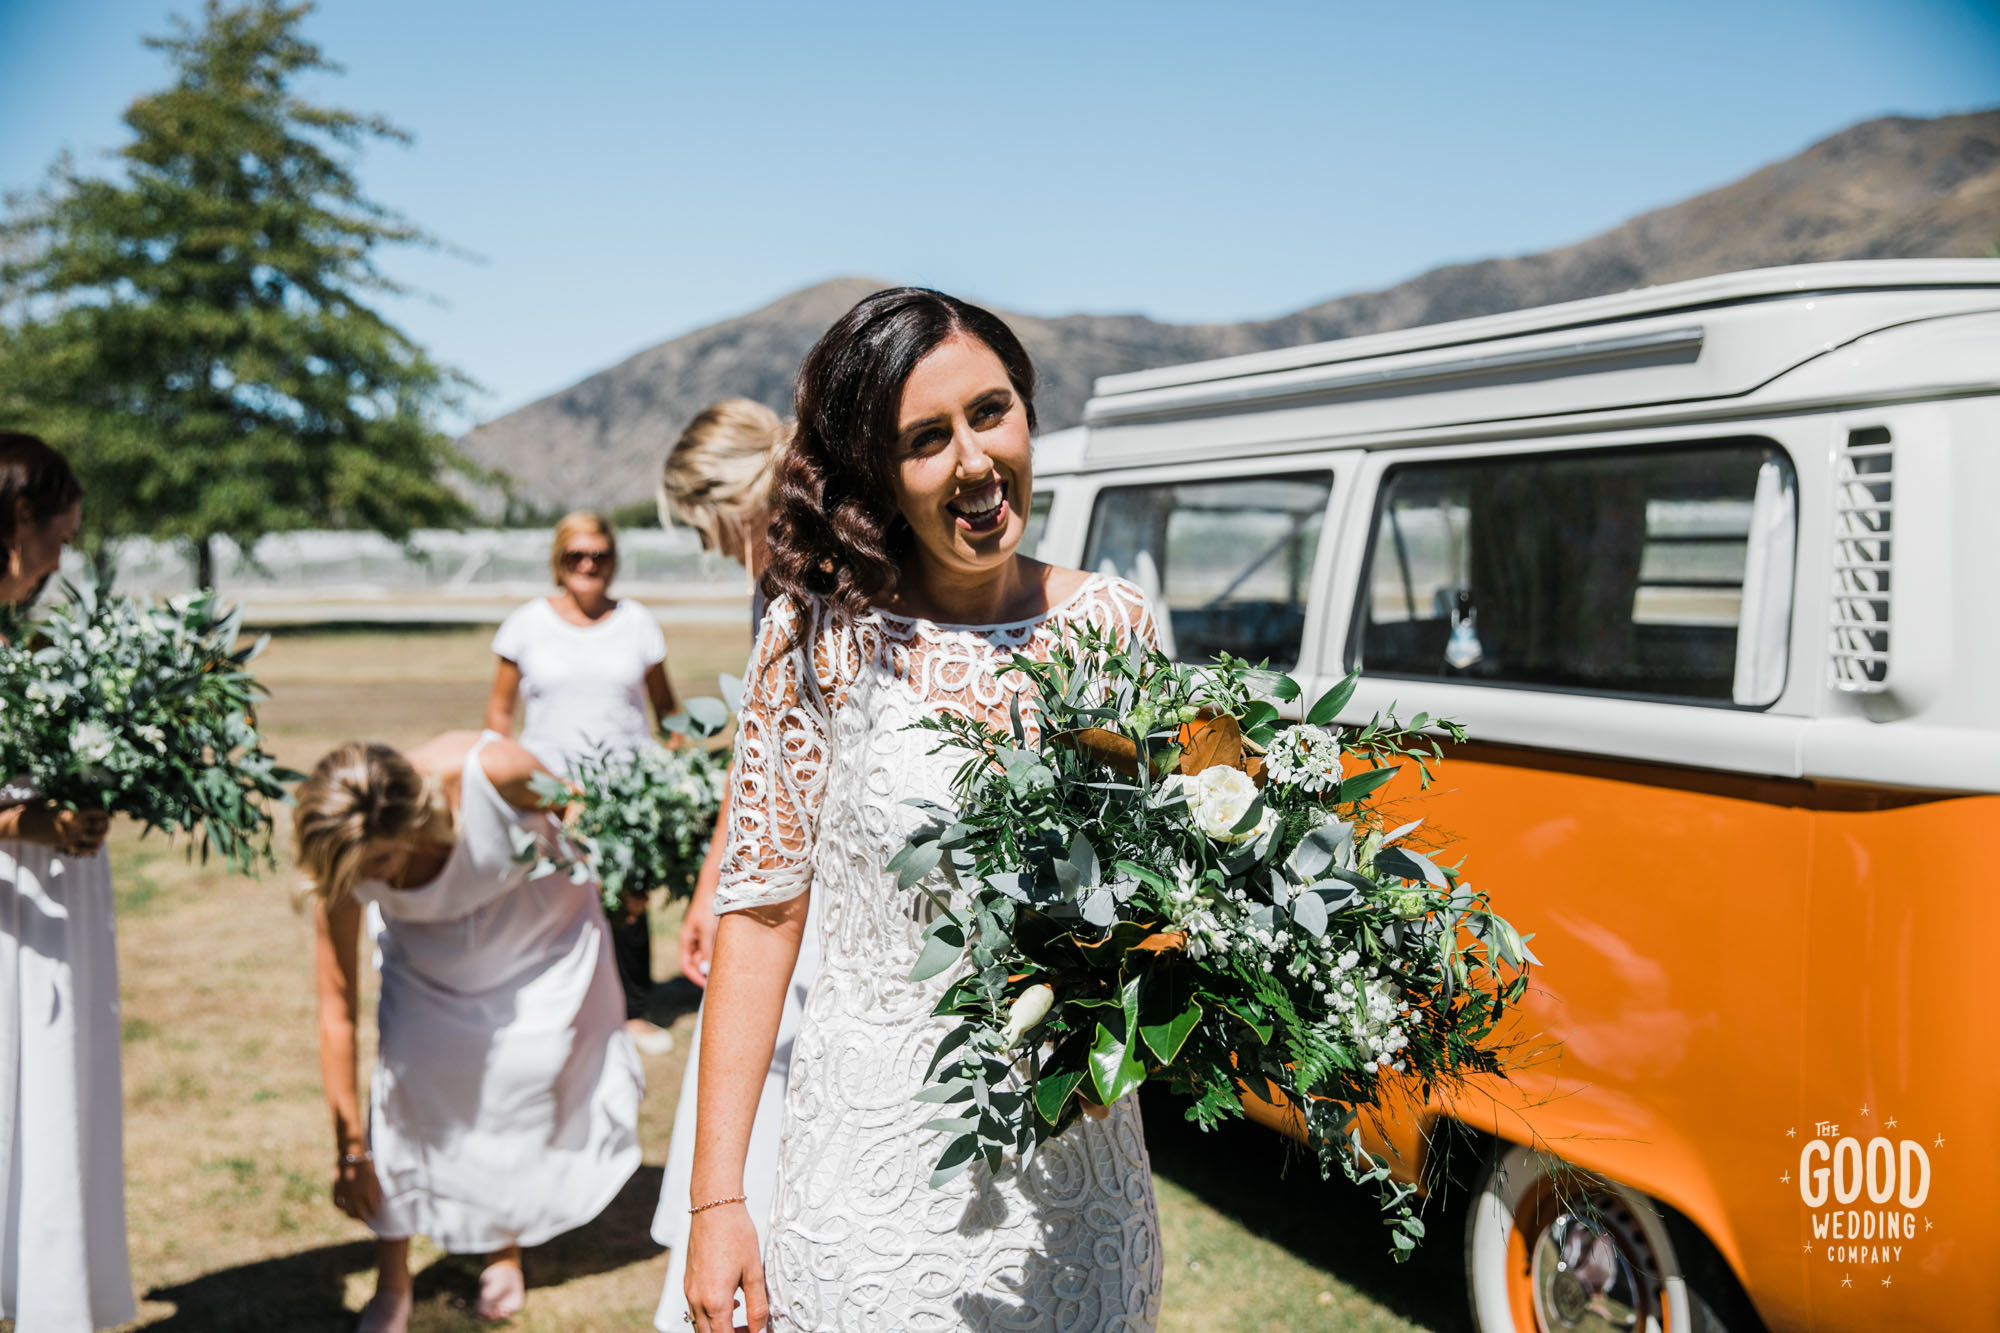 The-Good-Wedding-Company-LaurenLukas-Peregrine-Winery-Wanaka-Photographer-128.jpg